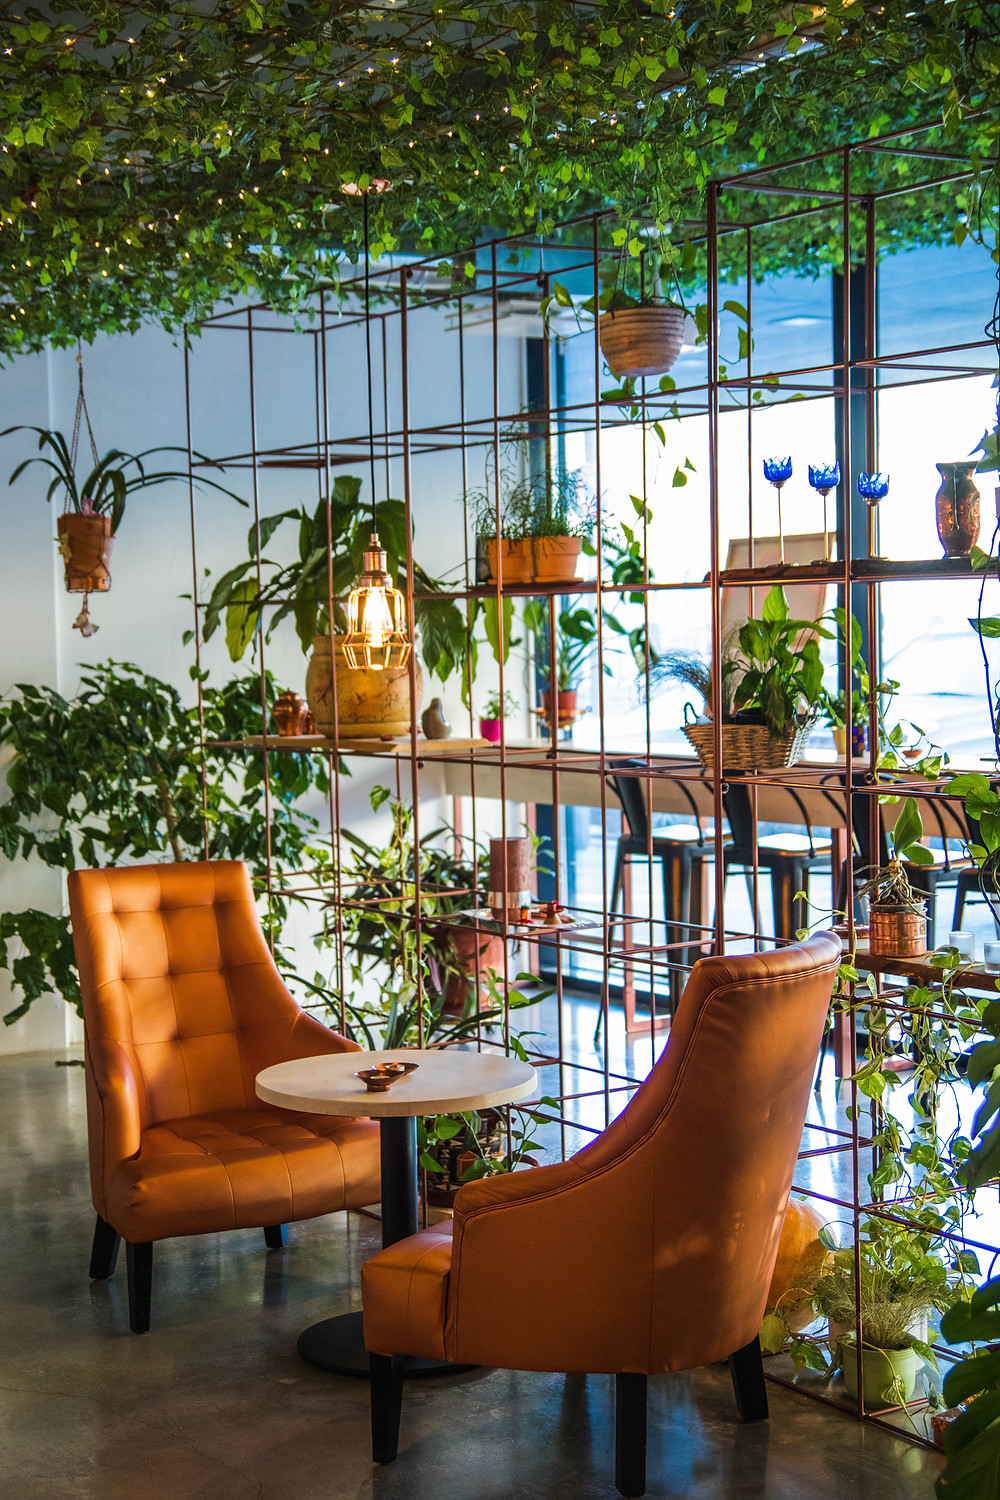 chairs surrounded by plants